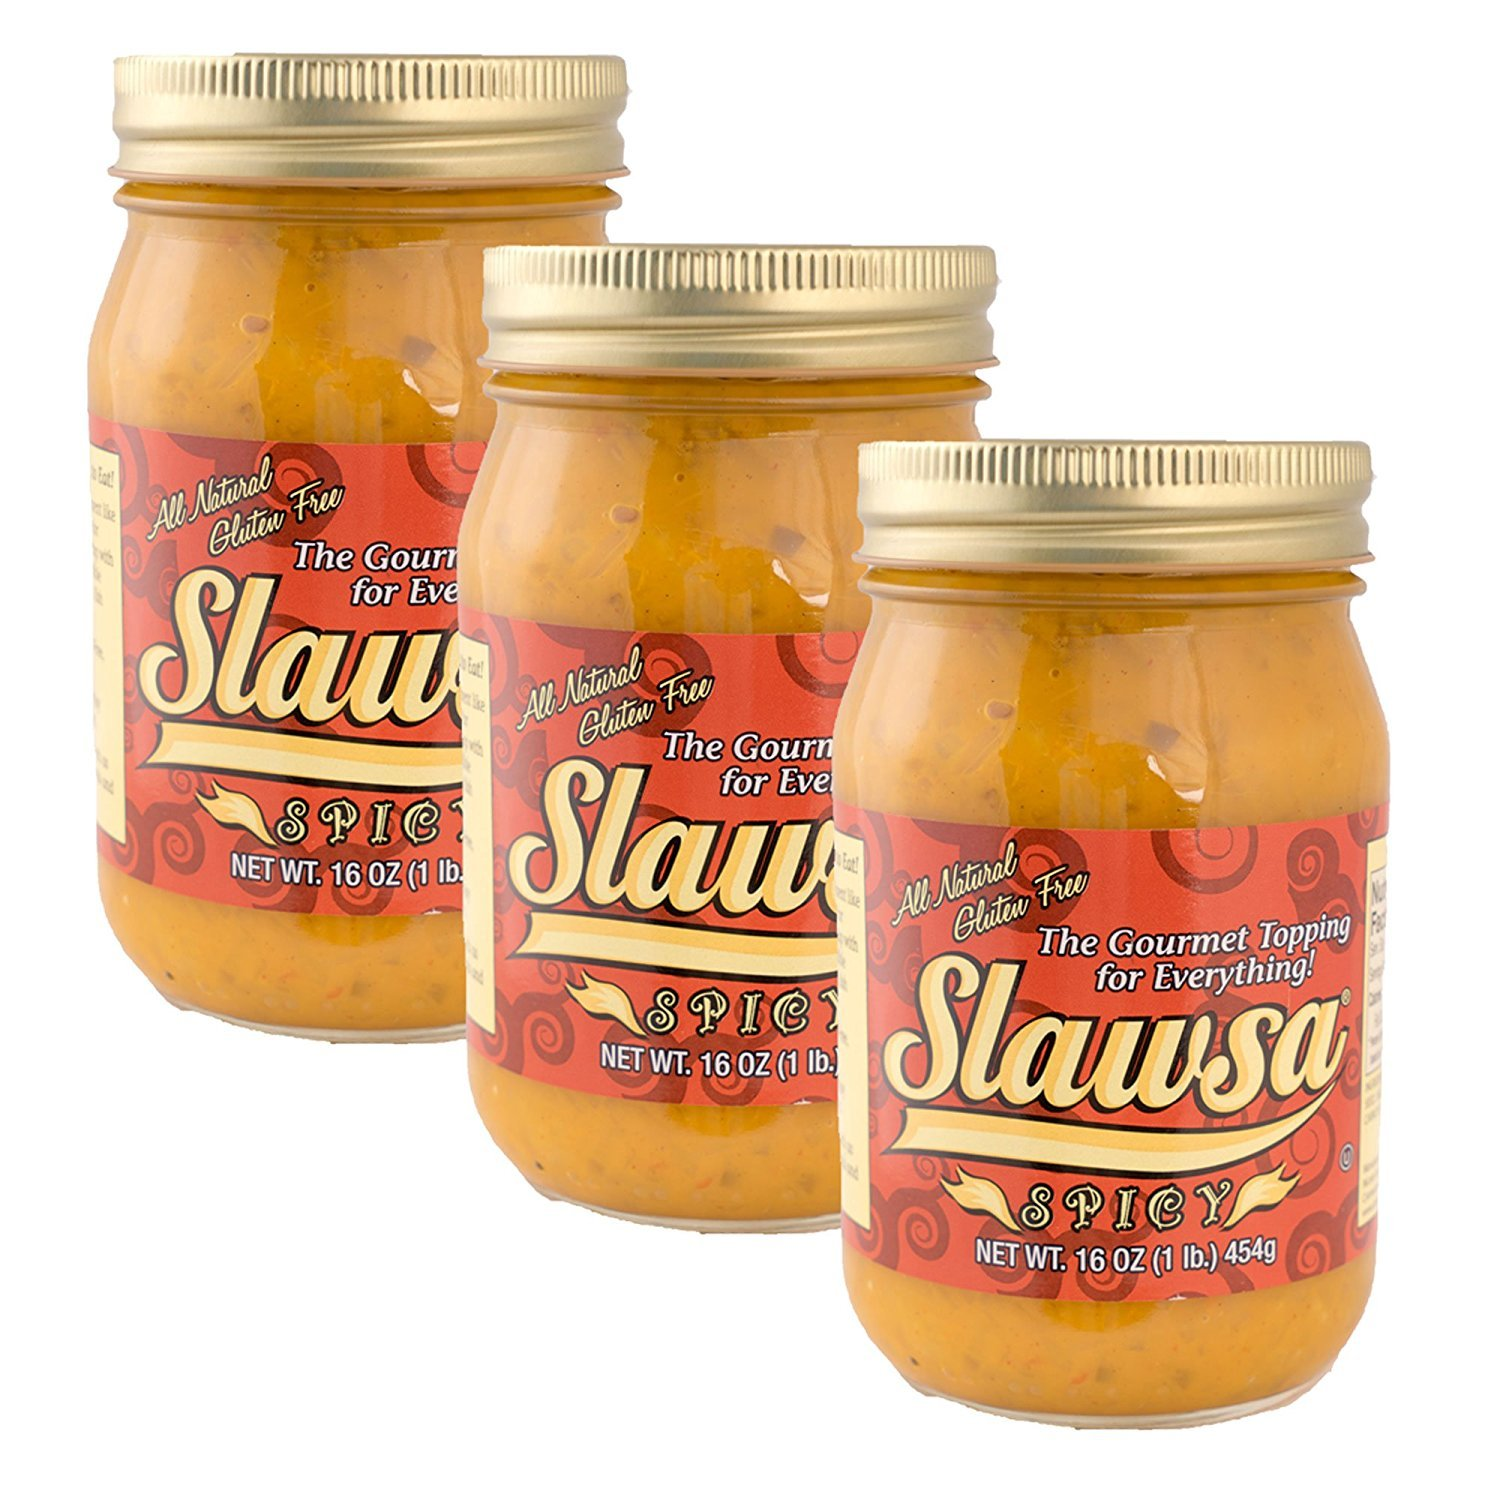 Slawsa All-Natural Gluten-Free The Gourmet Topping for Everything Certified Kosher Spicy Flavor 16 oz 3 pack